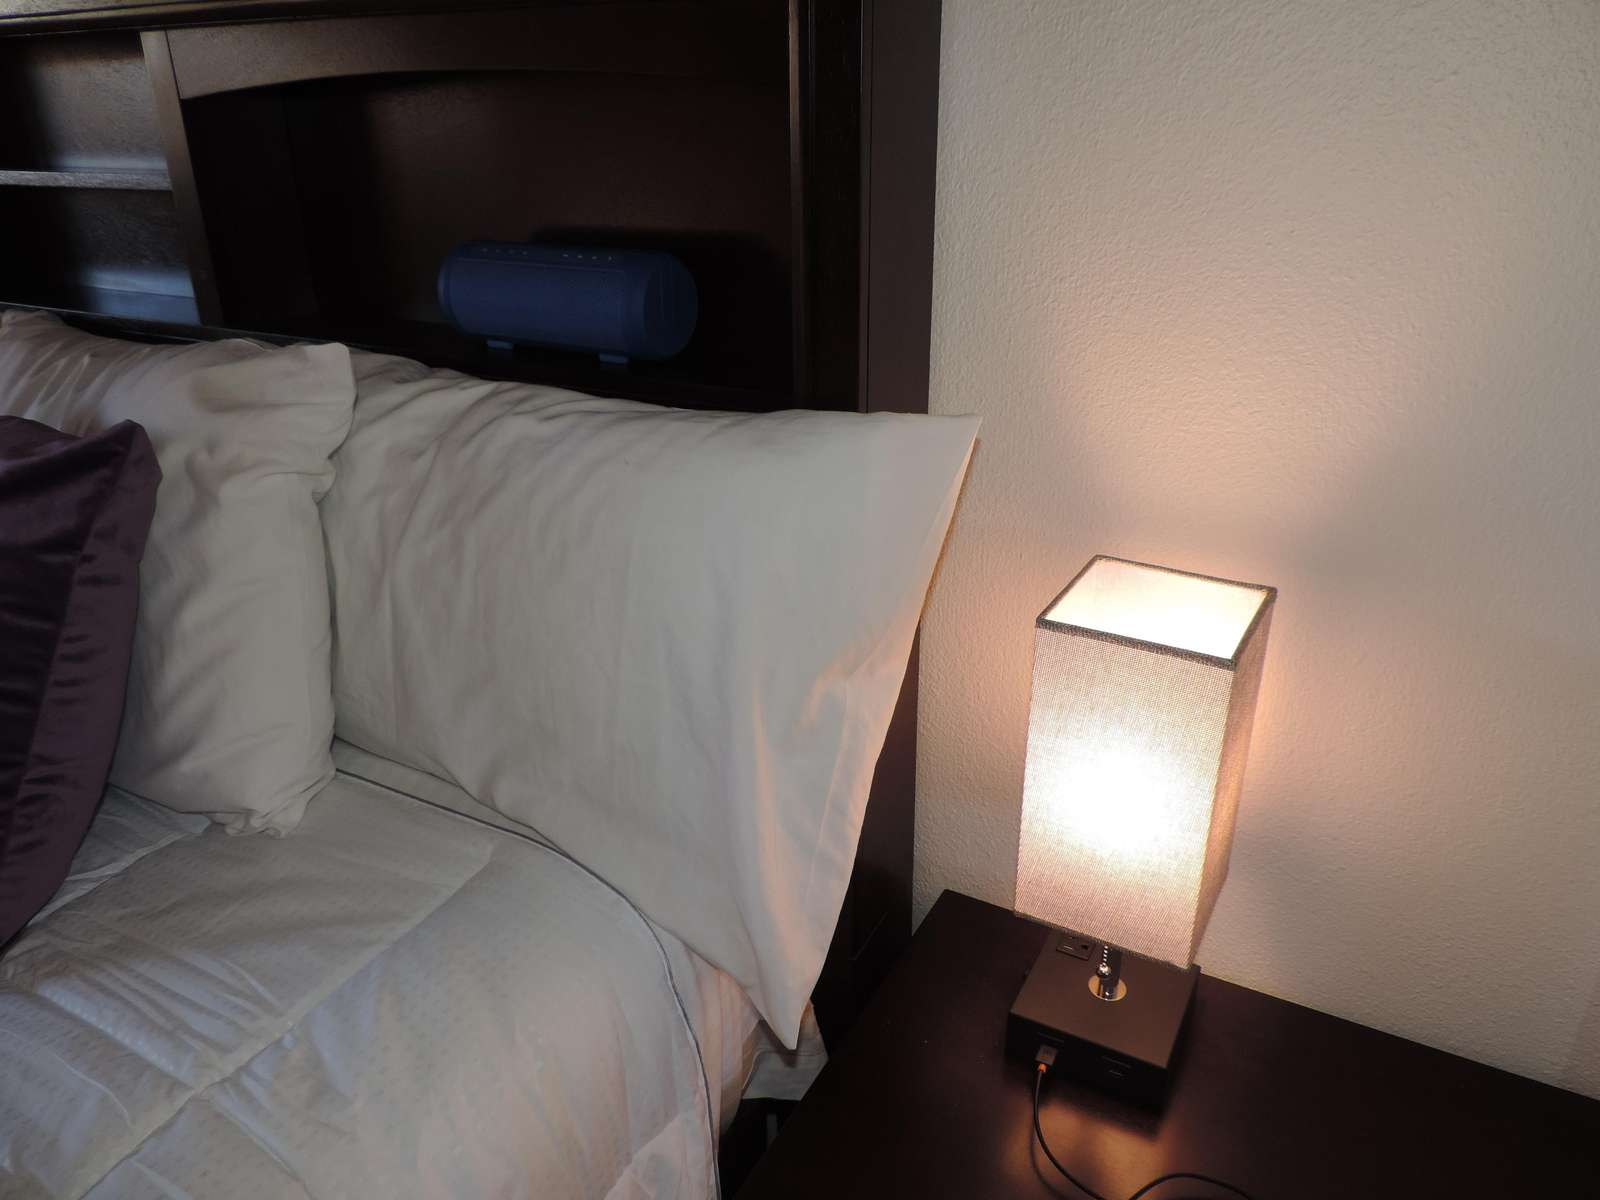 Both lamps have charging USB ports